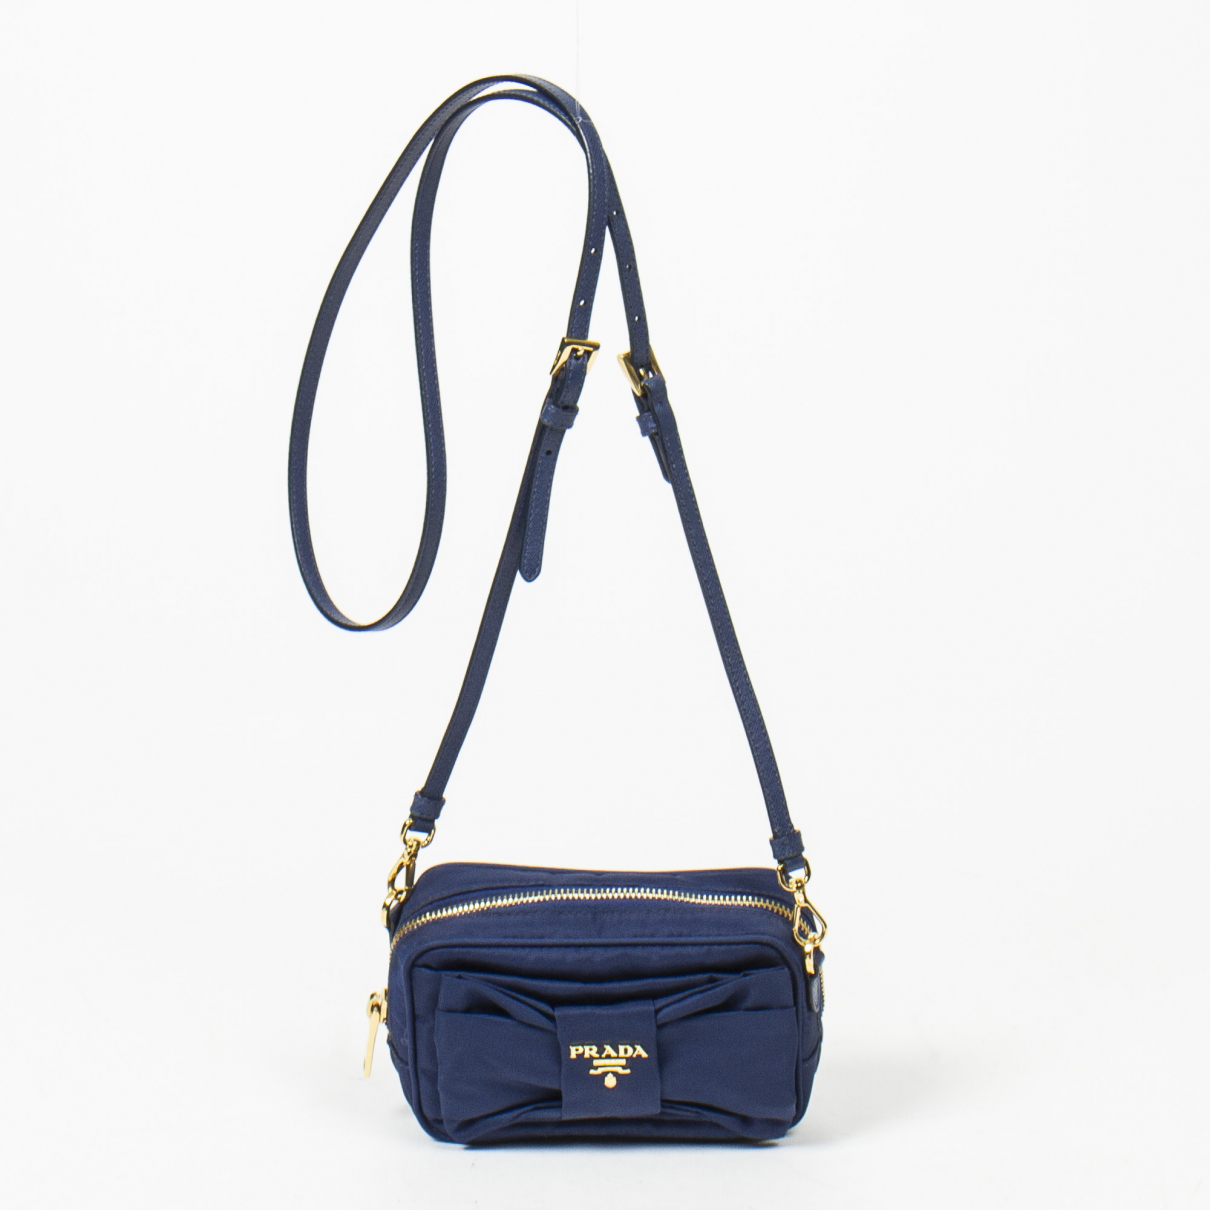 Prada Ribbon Blue Leather handbag for Women \N